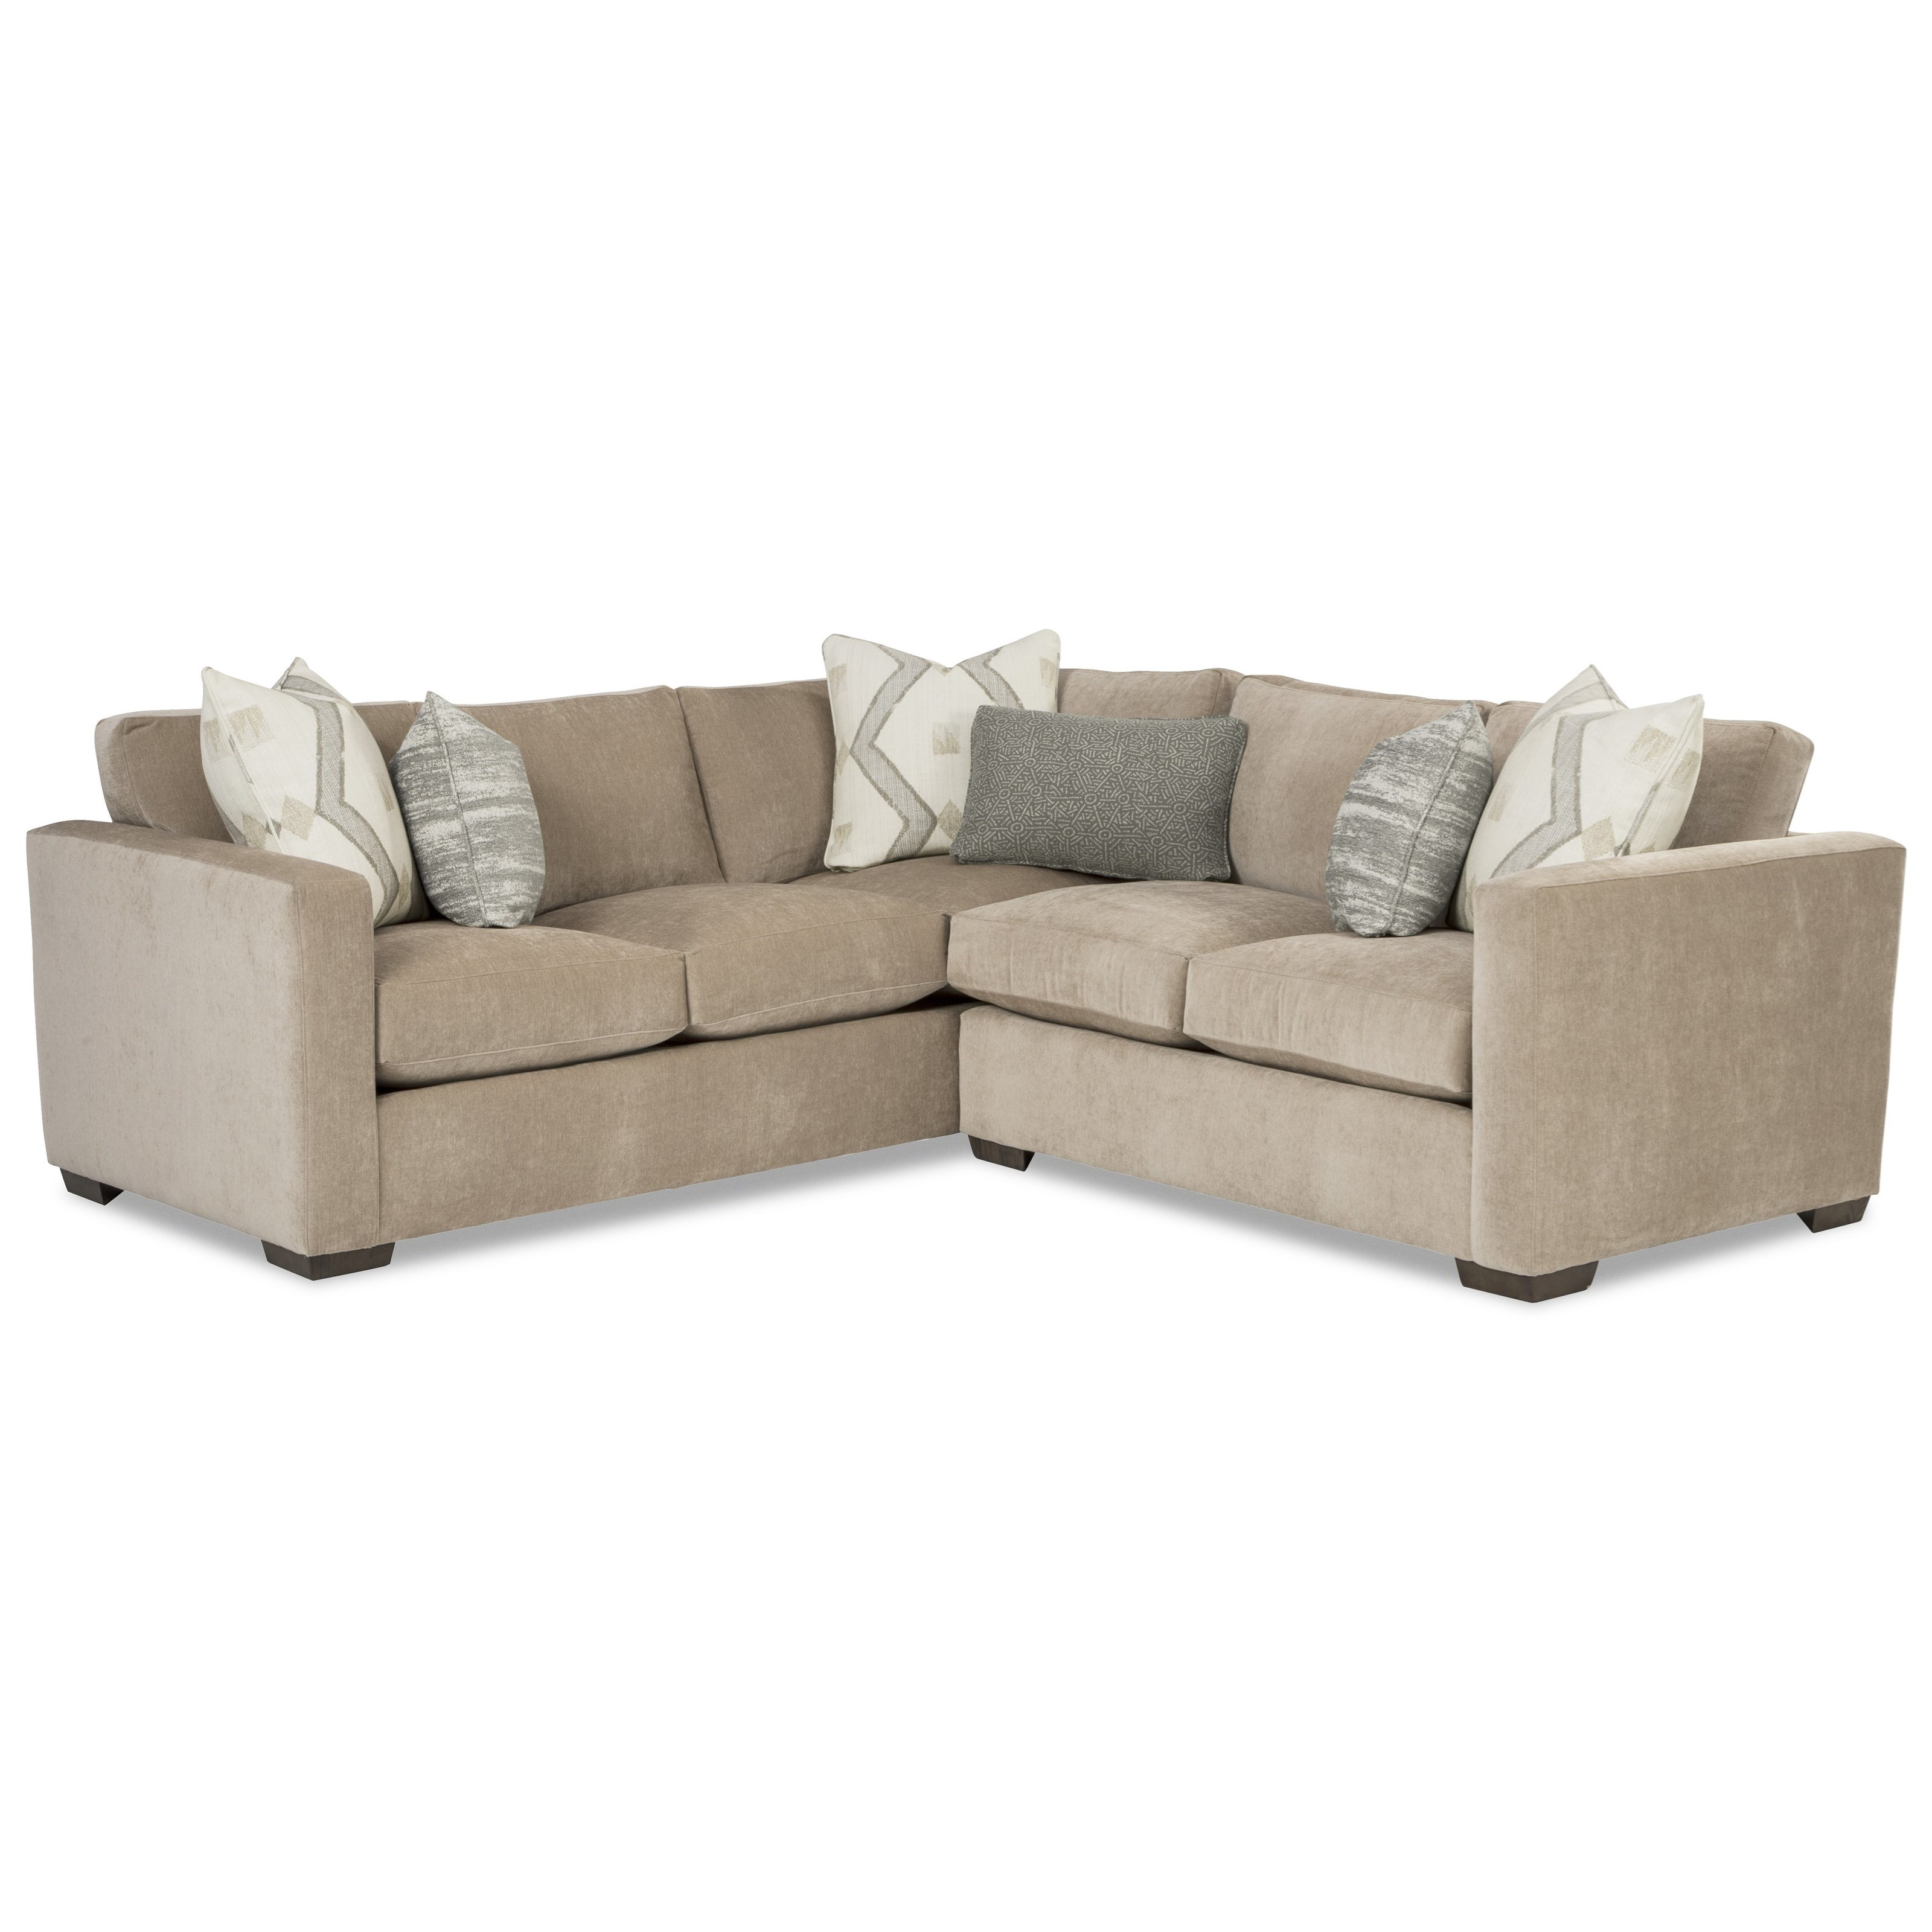 792750BD 2-Piece Sectional with LAF Corner Sofa by Craftmaster at Baer's Furniture